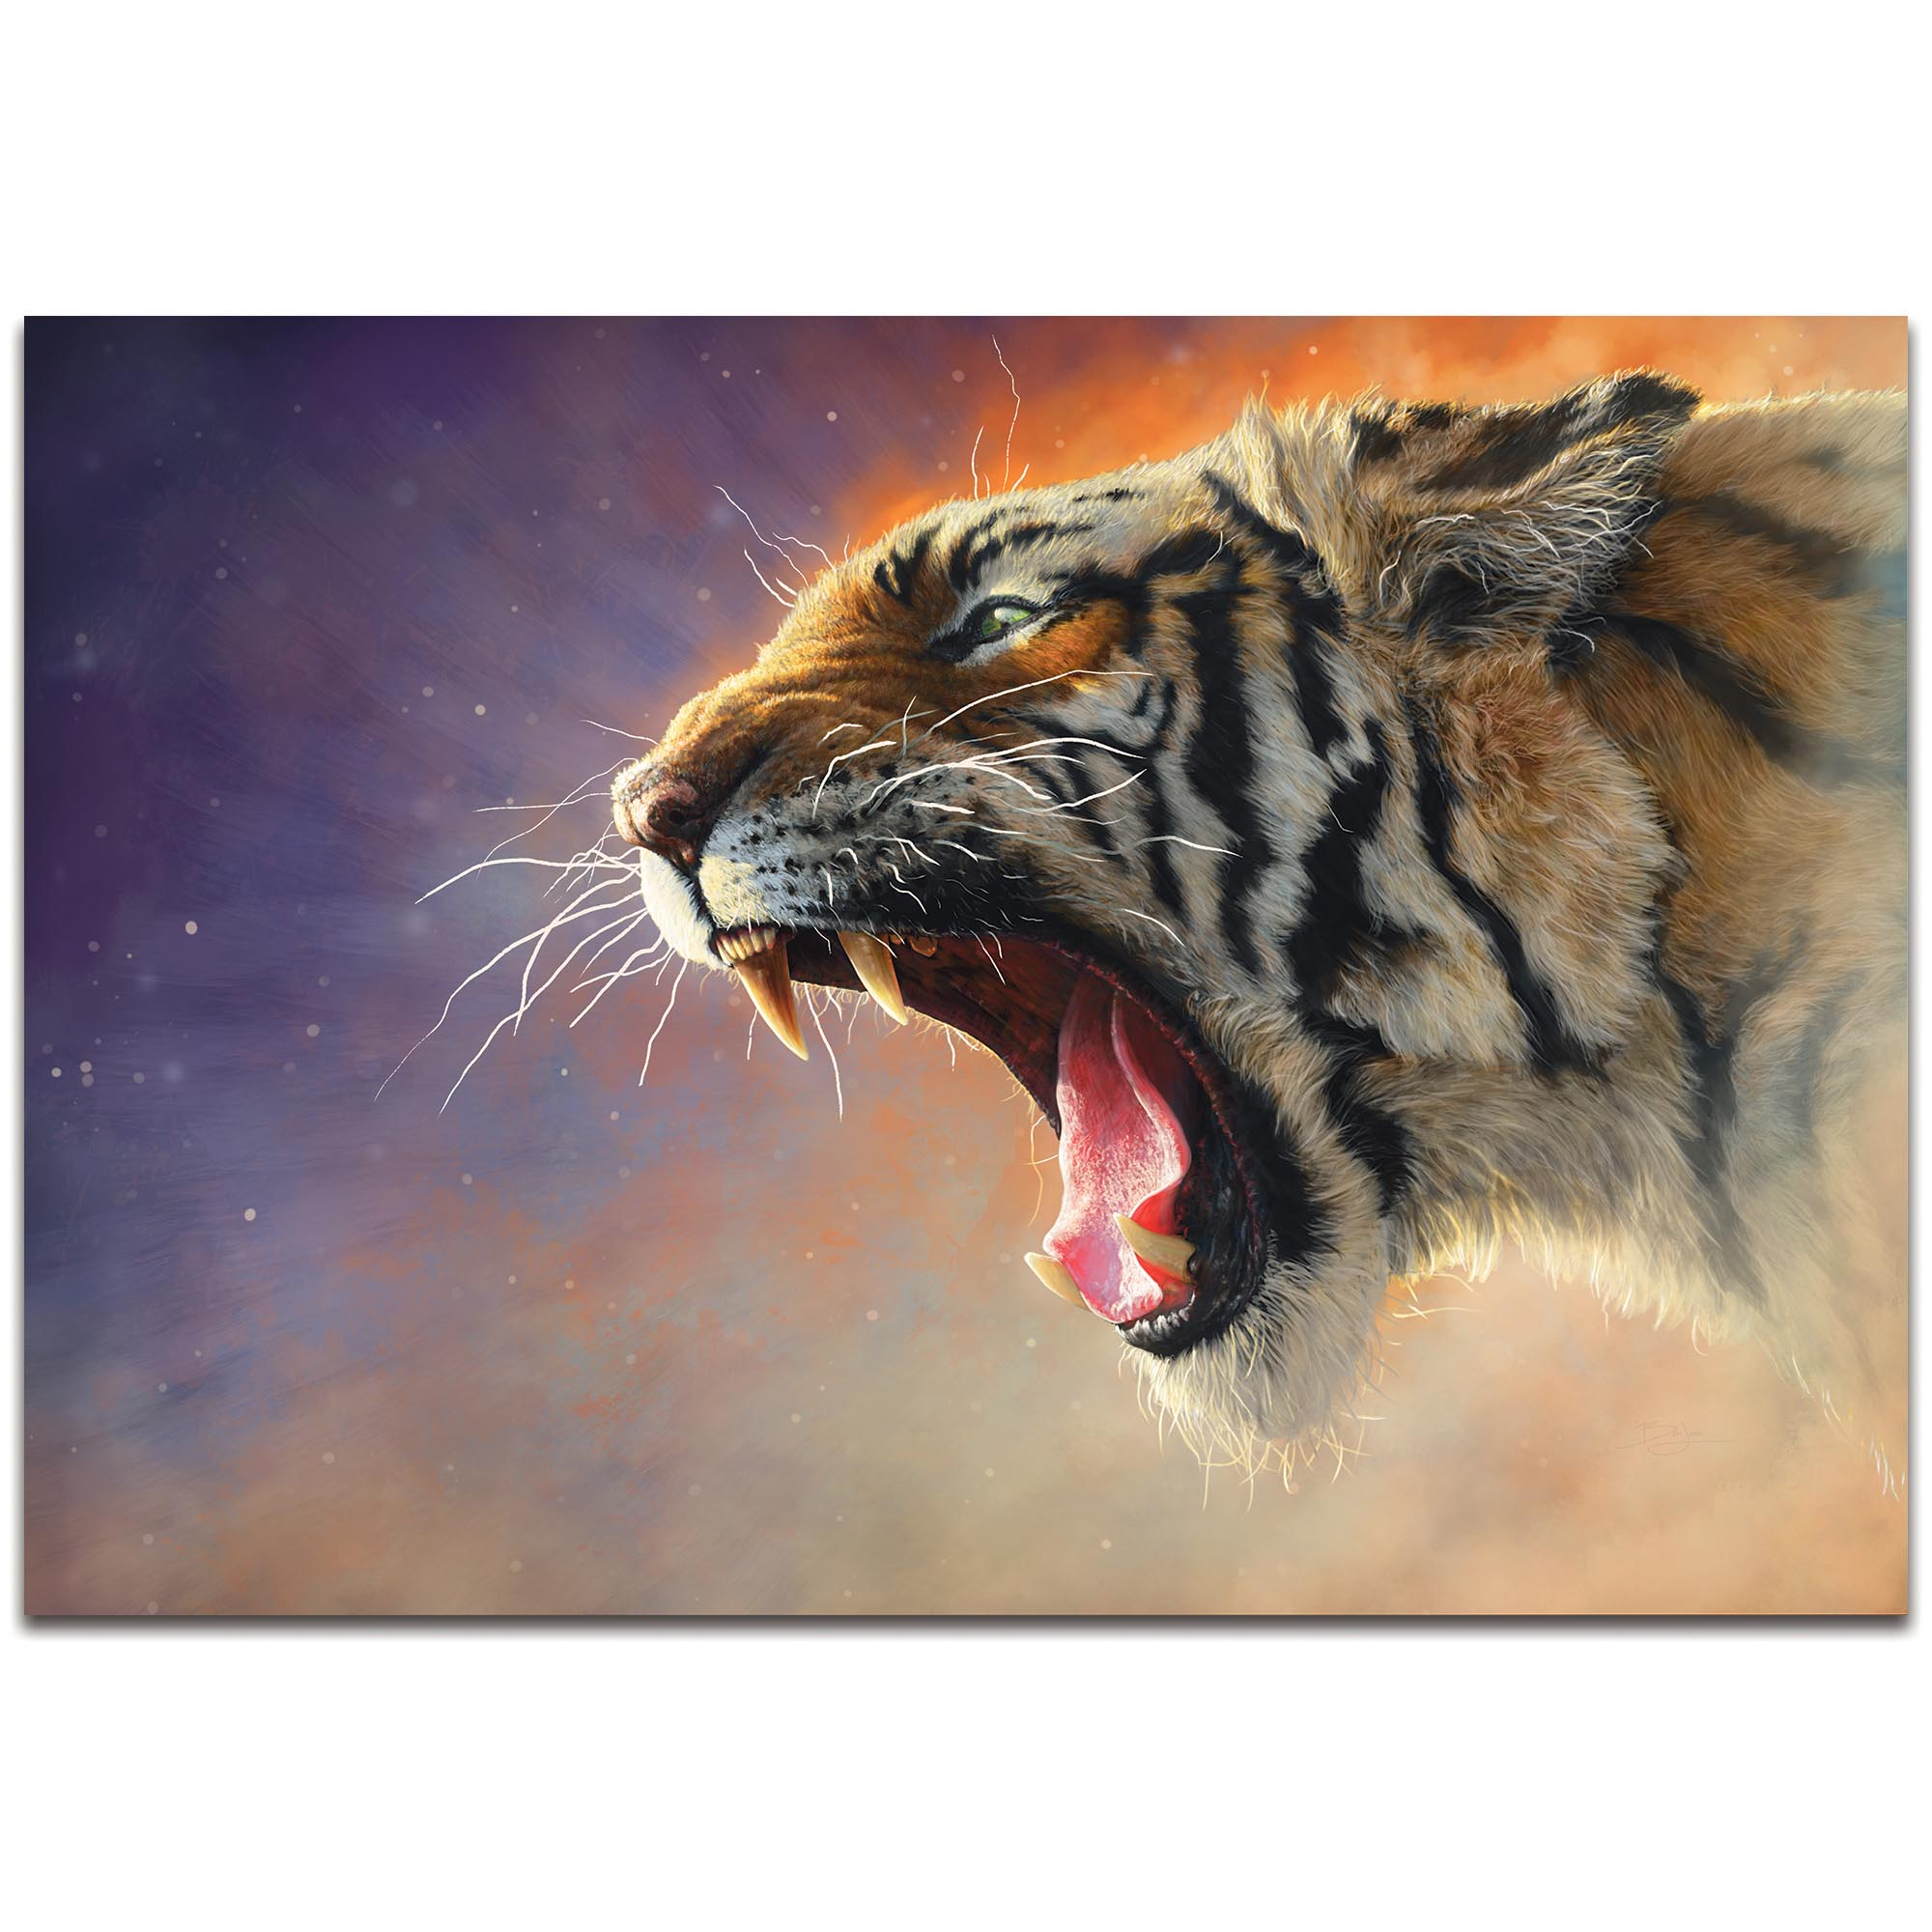 Expressionist Wall Art 'Fear Me' - Wildlife Decor on Metal or Plexiglass